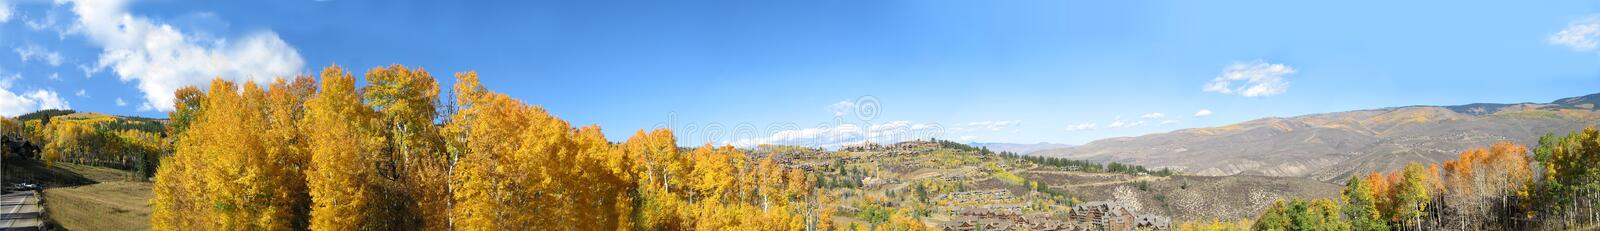 Colorado Mountains 5 royalty free stock image